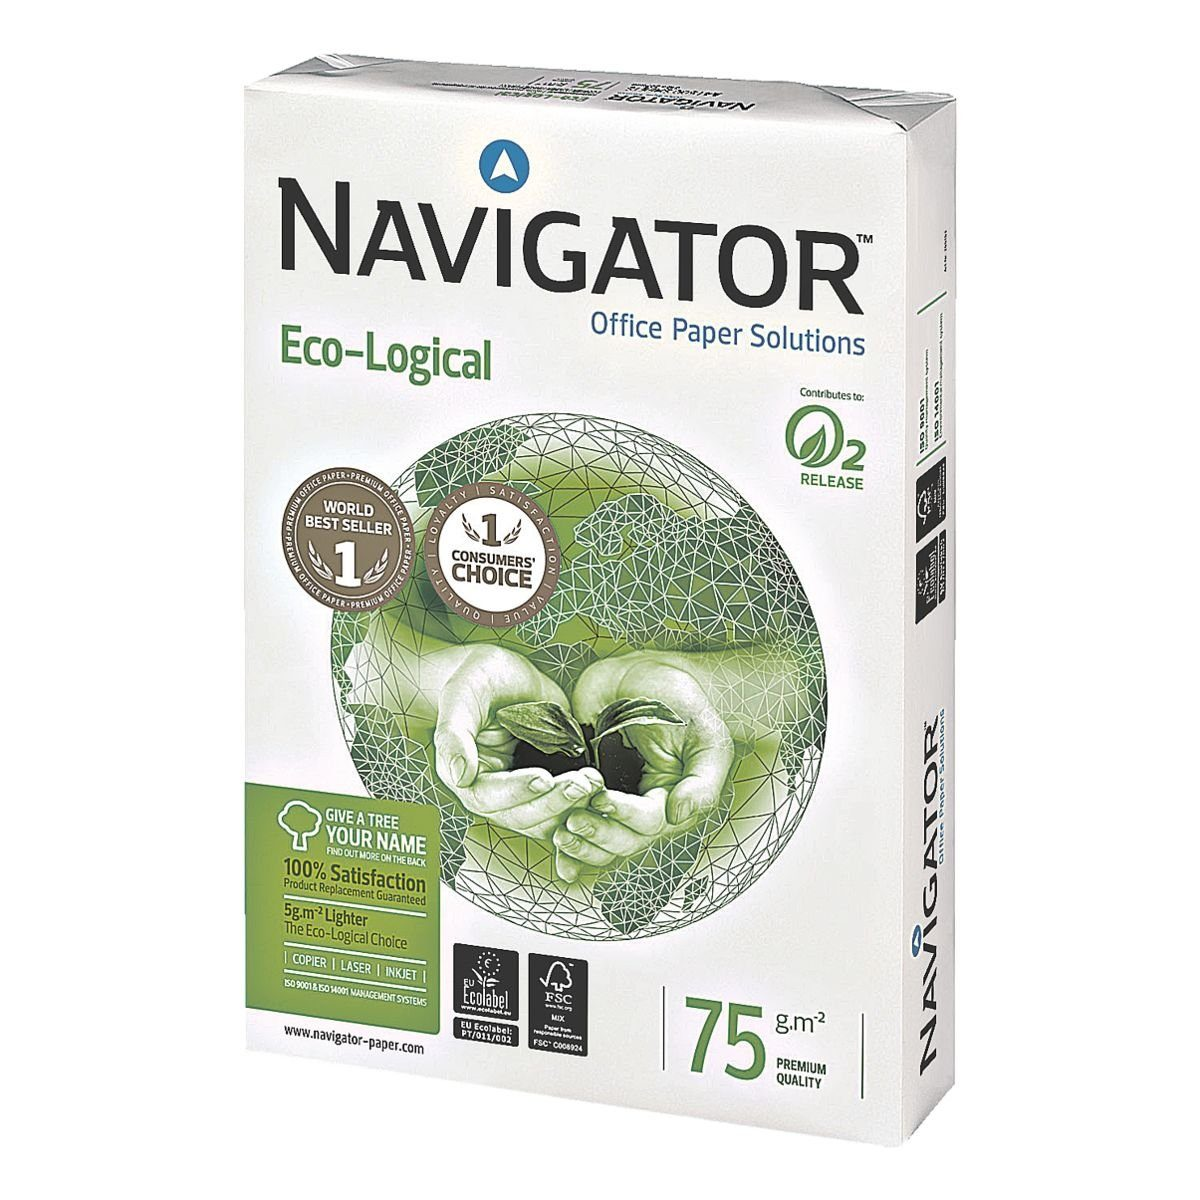 Navigator Multifunktionales Druckerpapier »Eco-Logical«